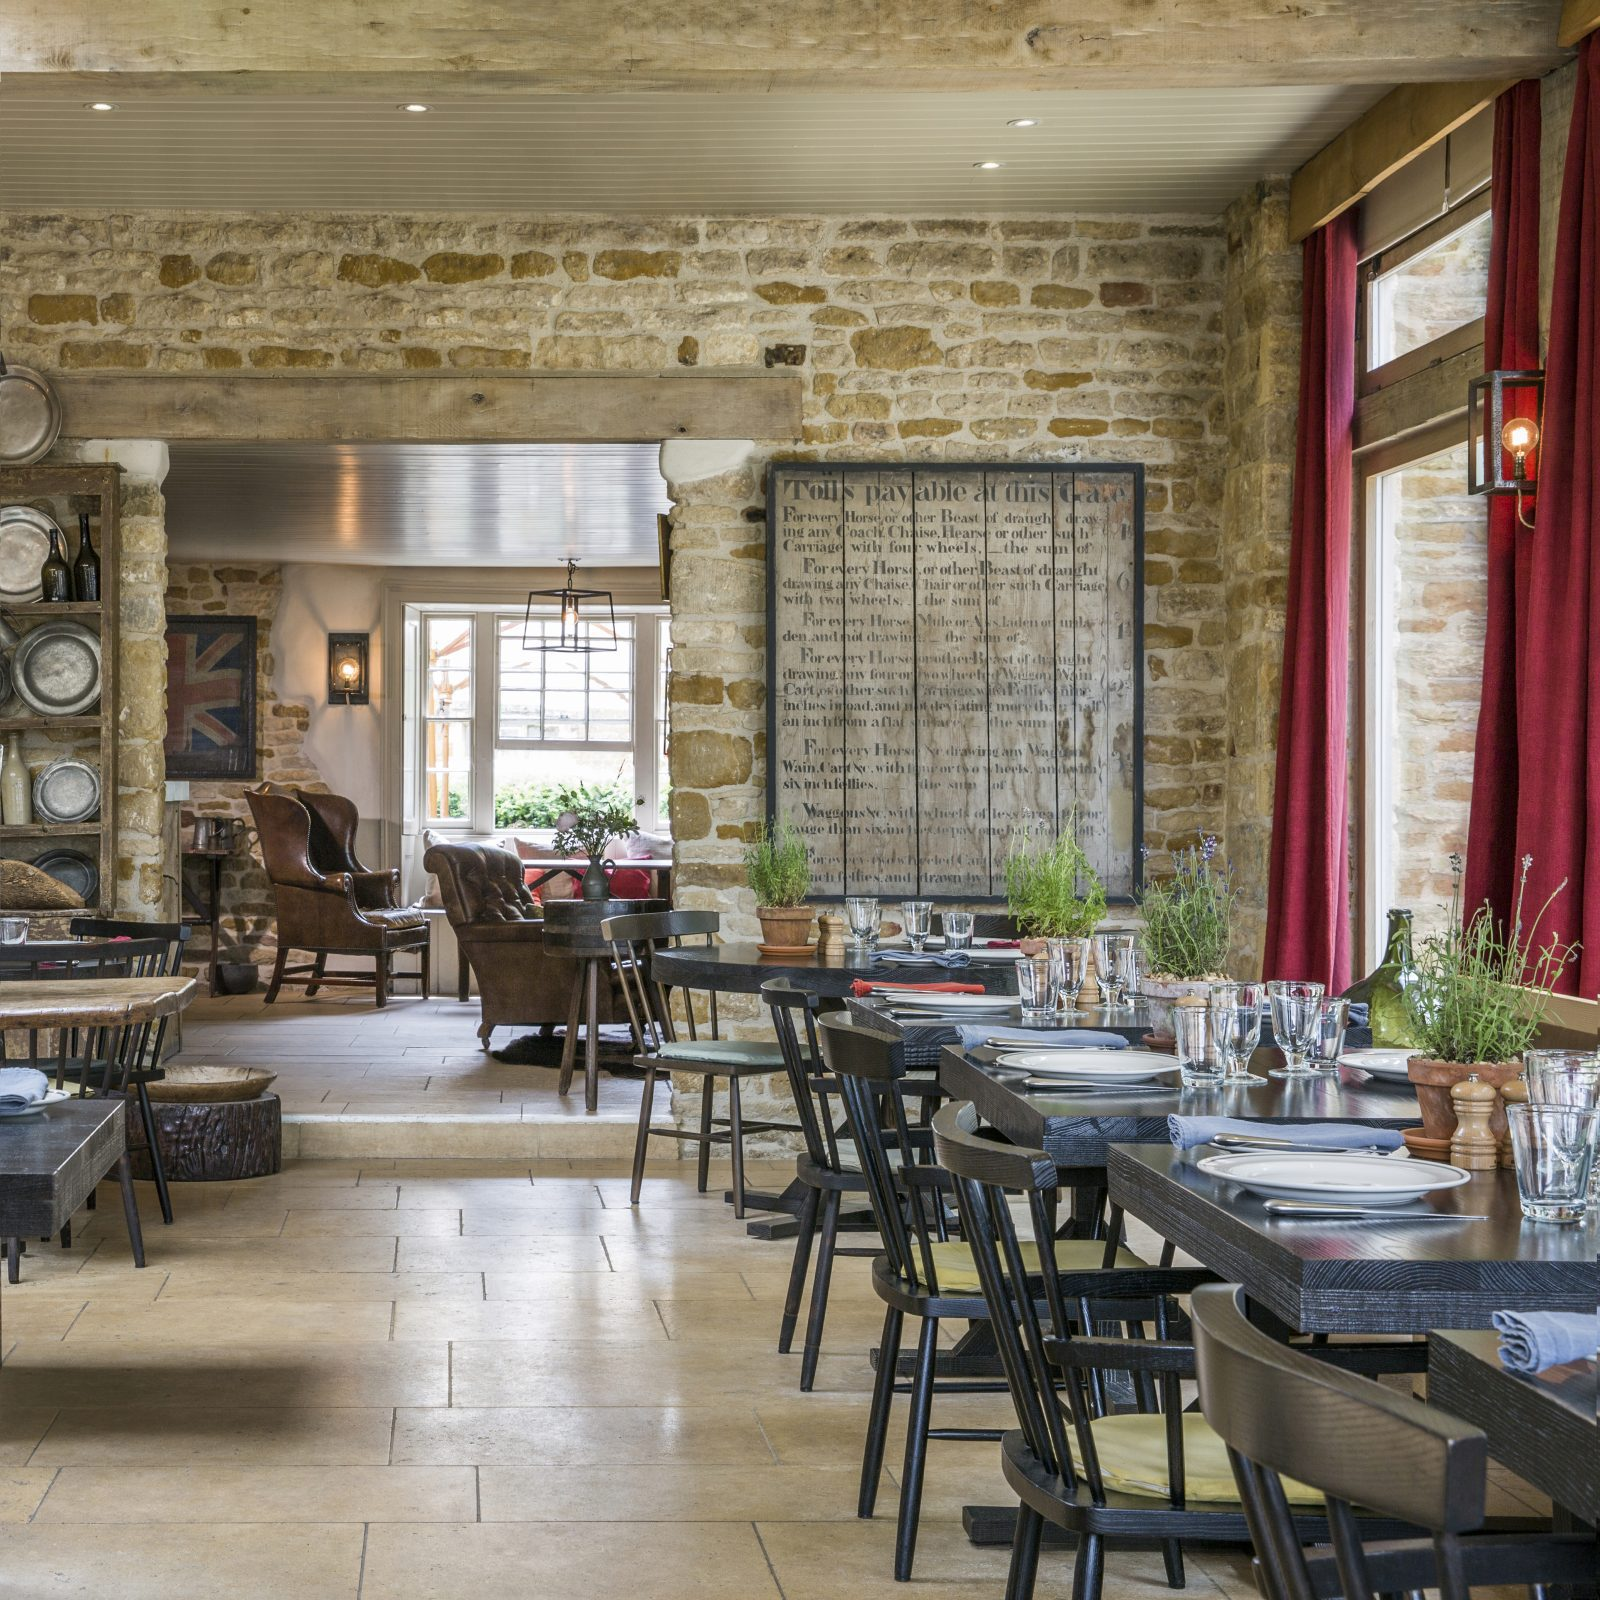 The Wild Rabbit, Kingham Pub with Rooms in Oxfordshire 05